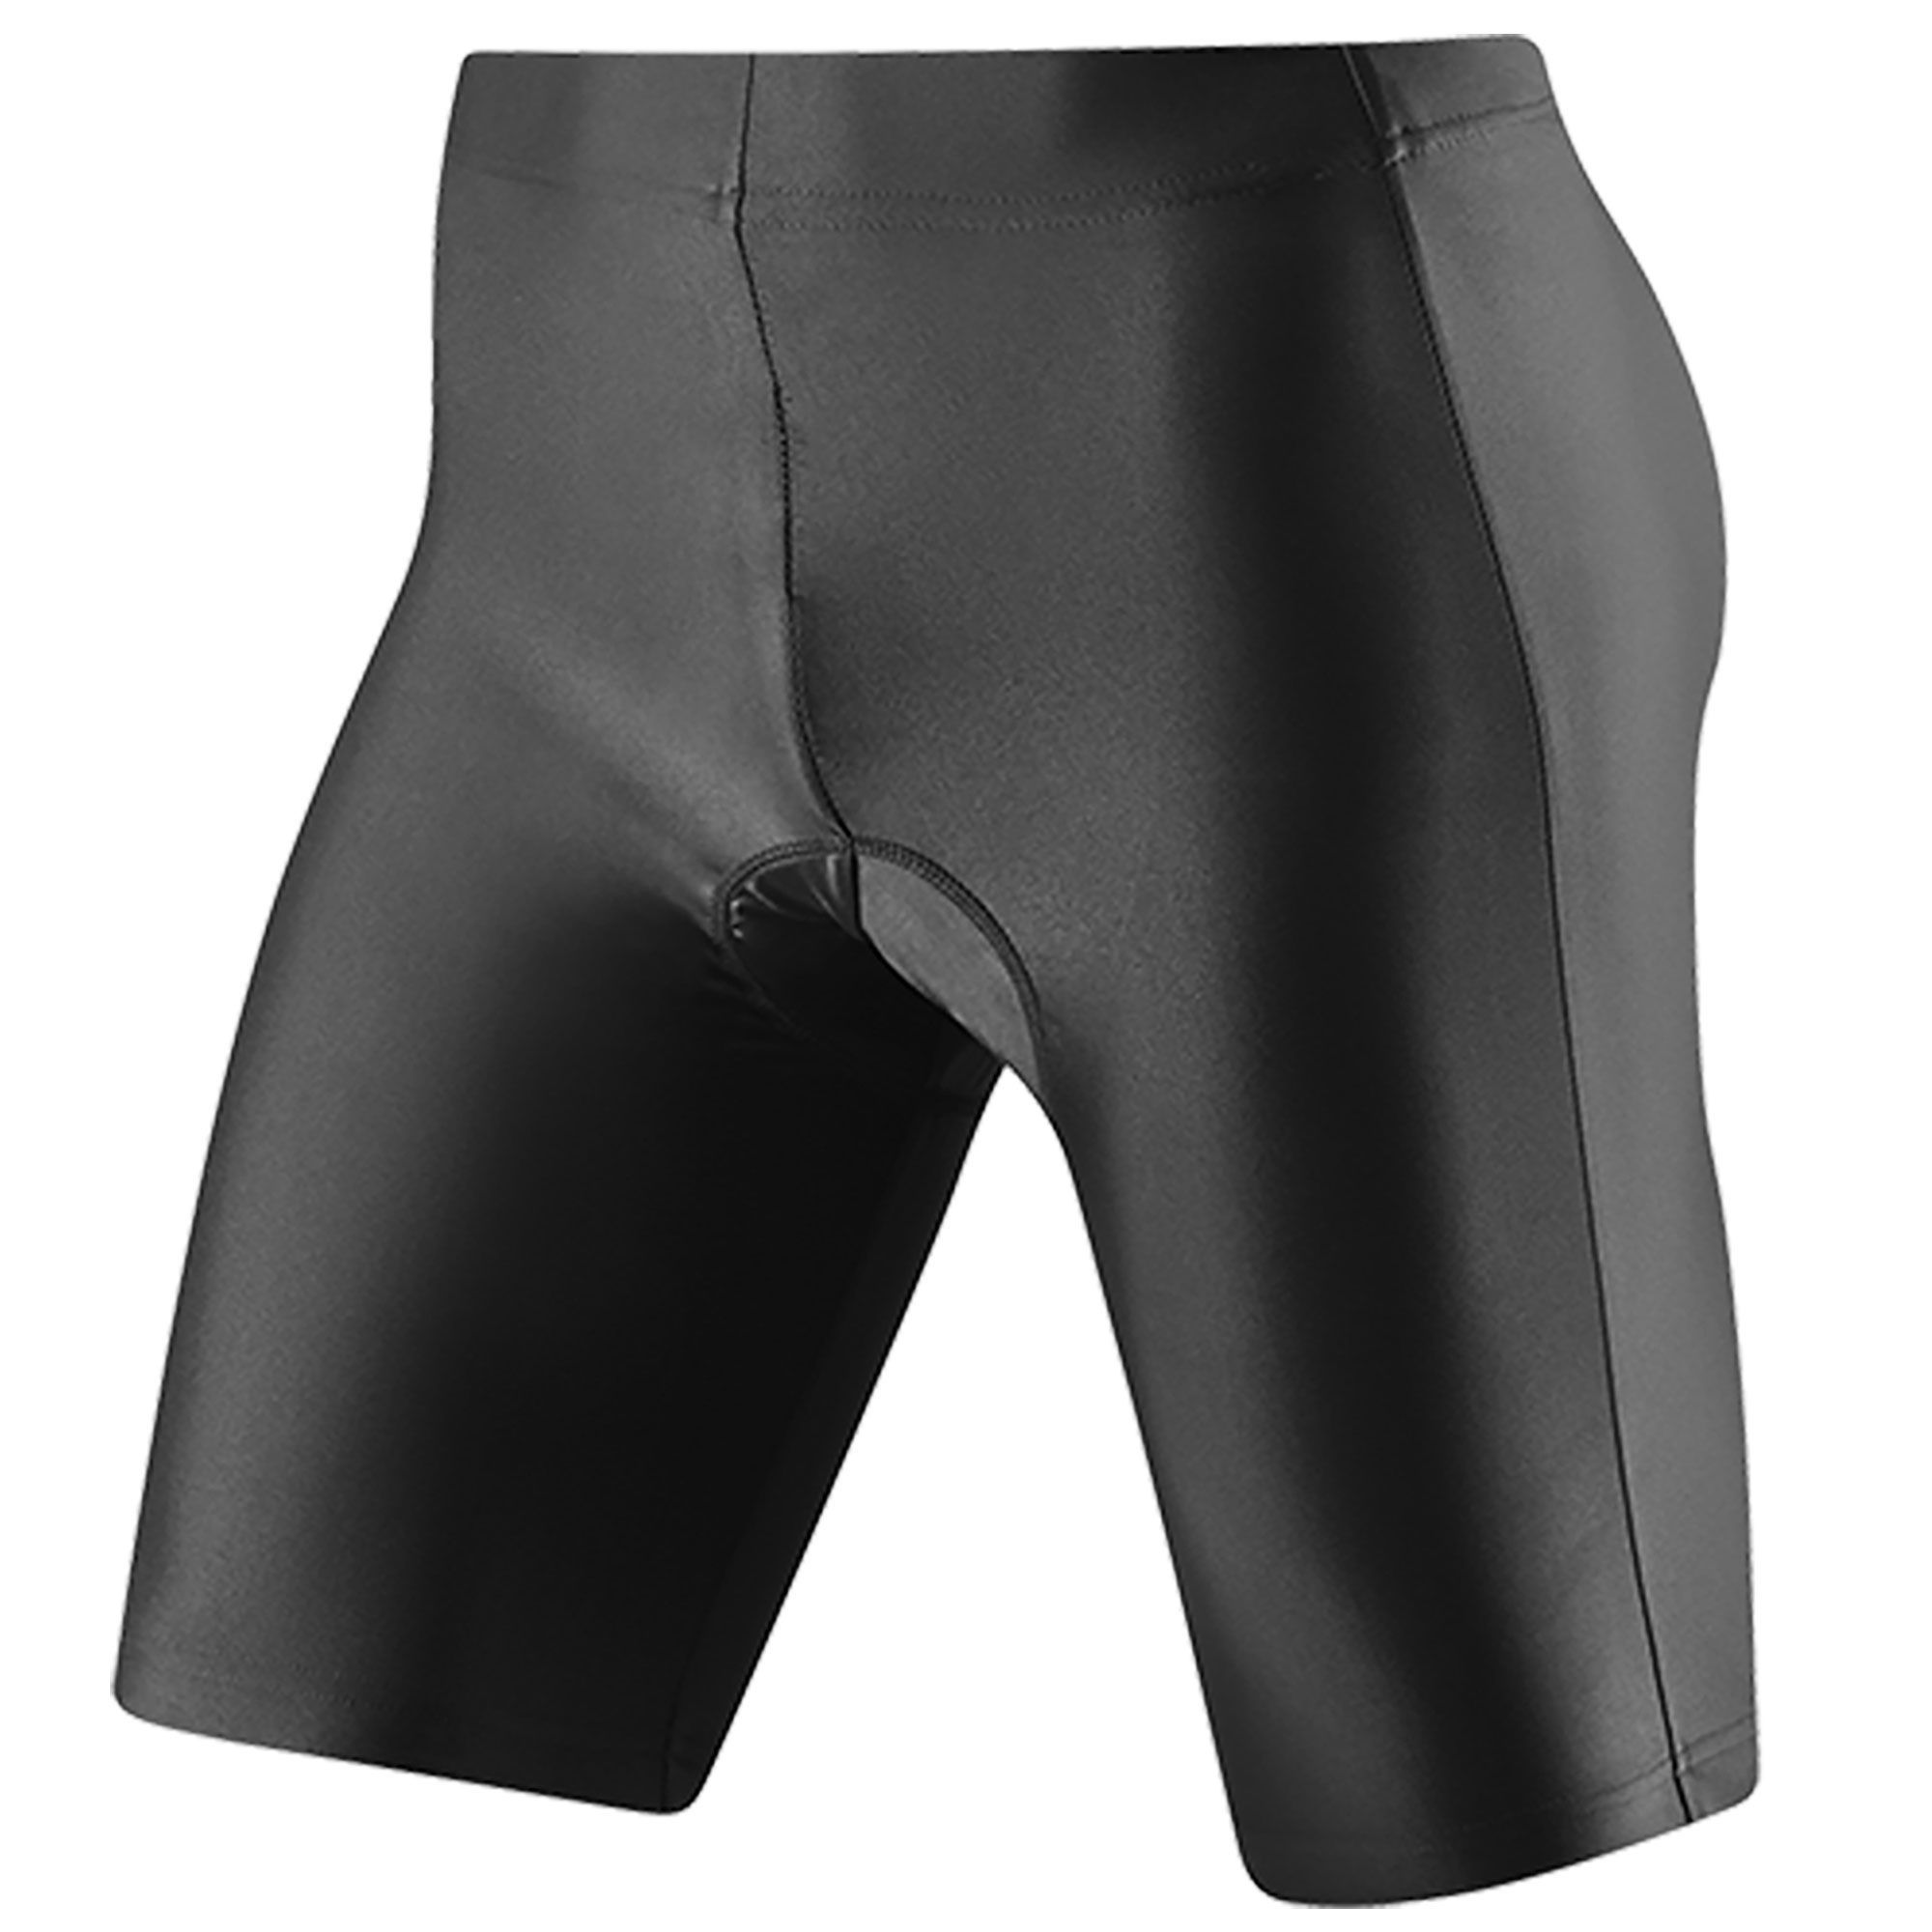 f7f1861a1 Altura Cadence 2 Waist Shorts Black - Medium  CyclingBargains  DealFinder   Bike  BikeBargains  Fitness Visit our web site to find the best Cycling  Bargains ...